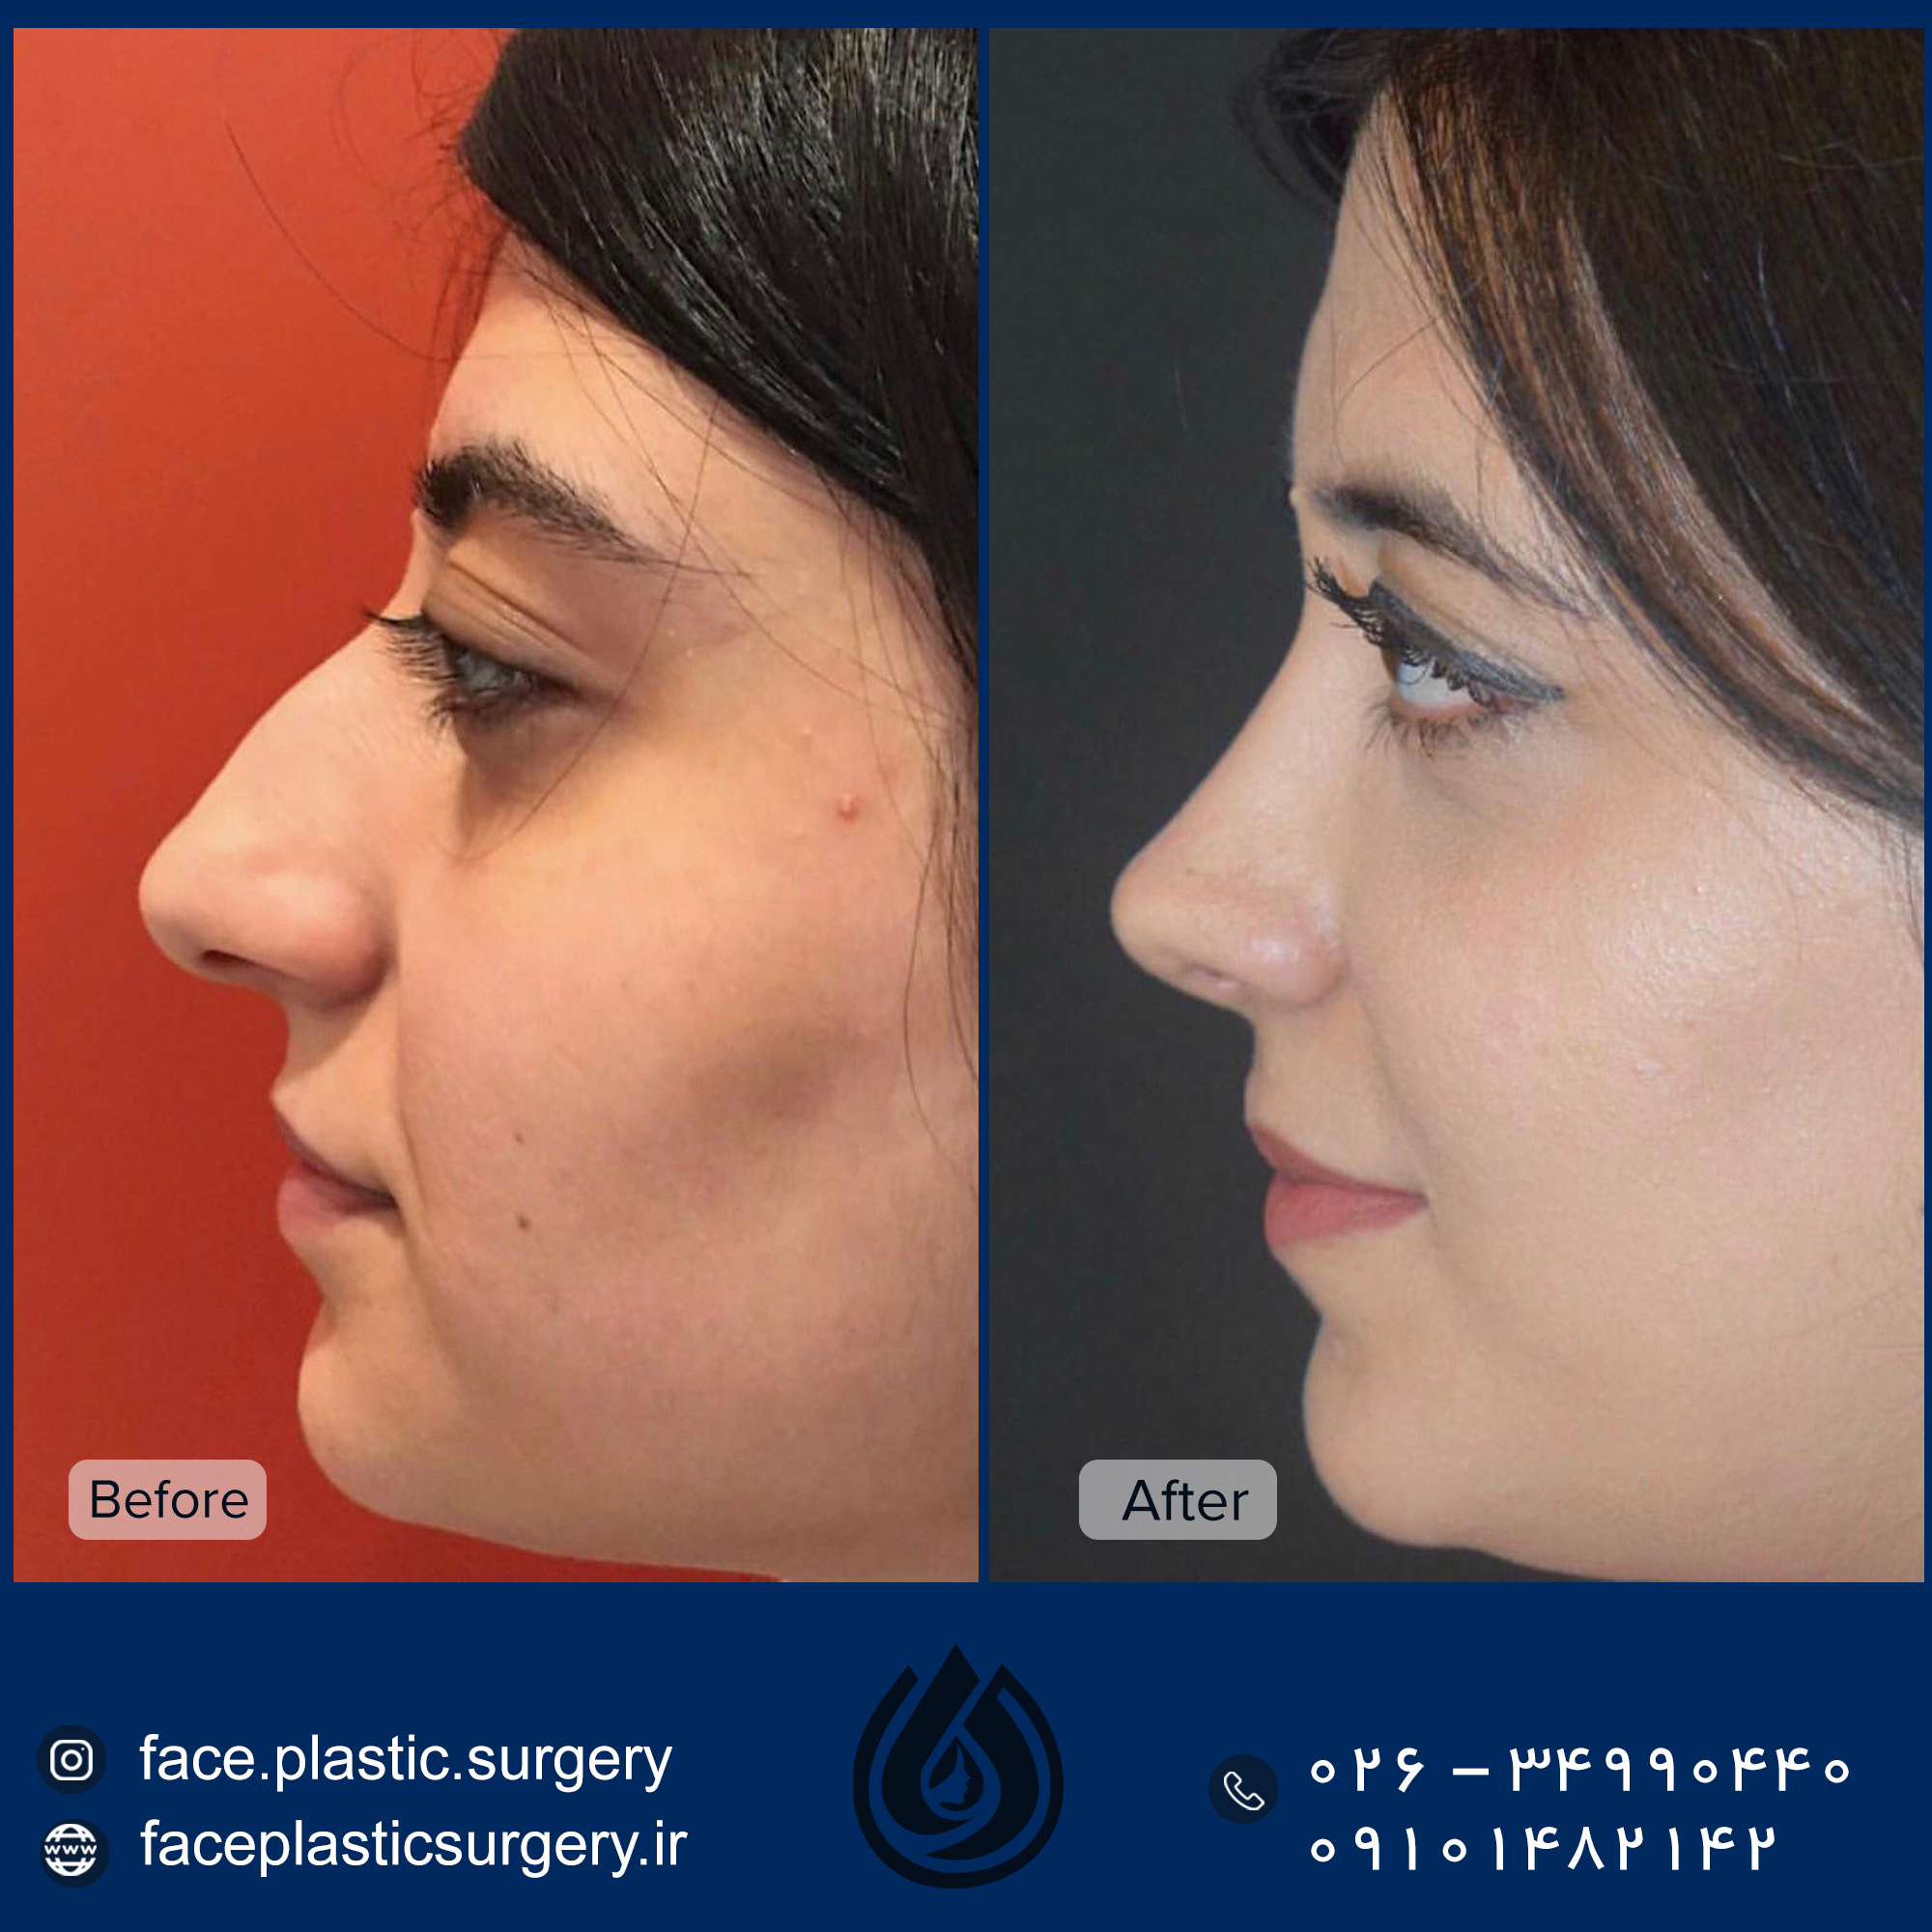 dr-norozi-before-after.jpg5